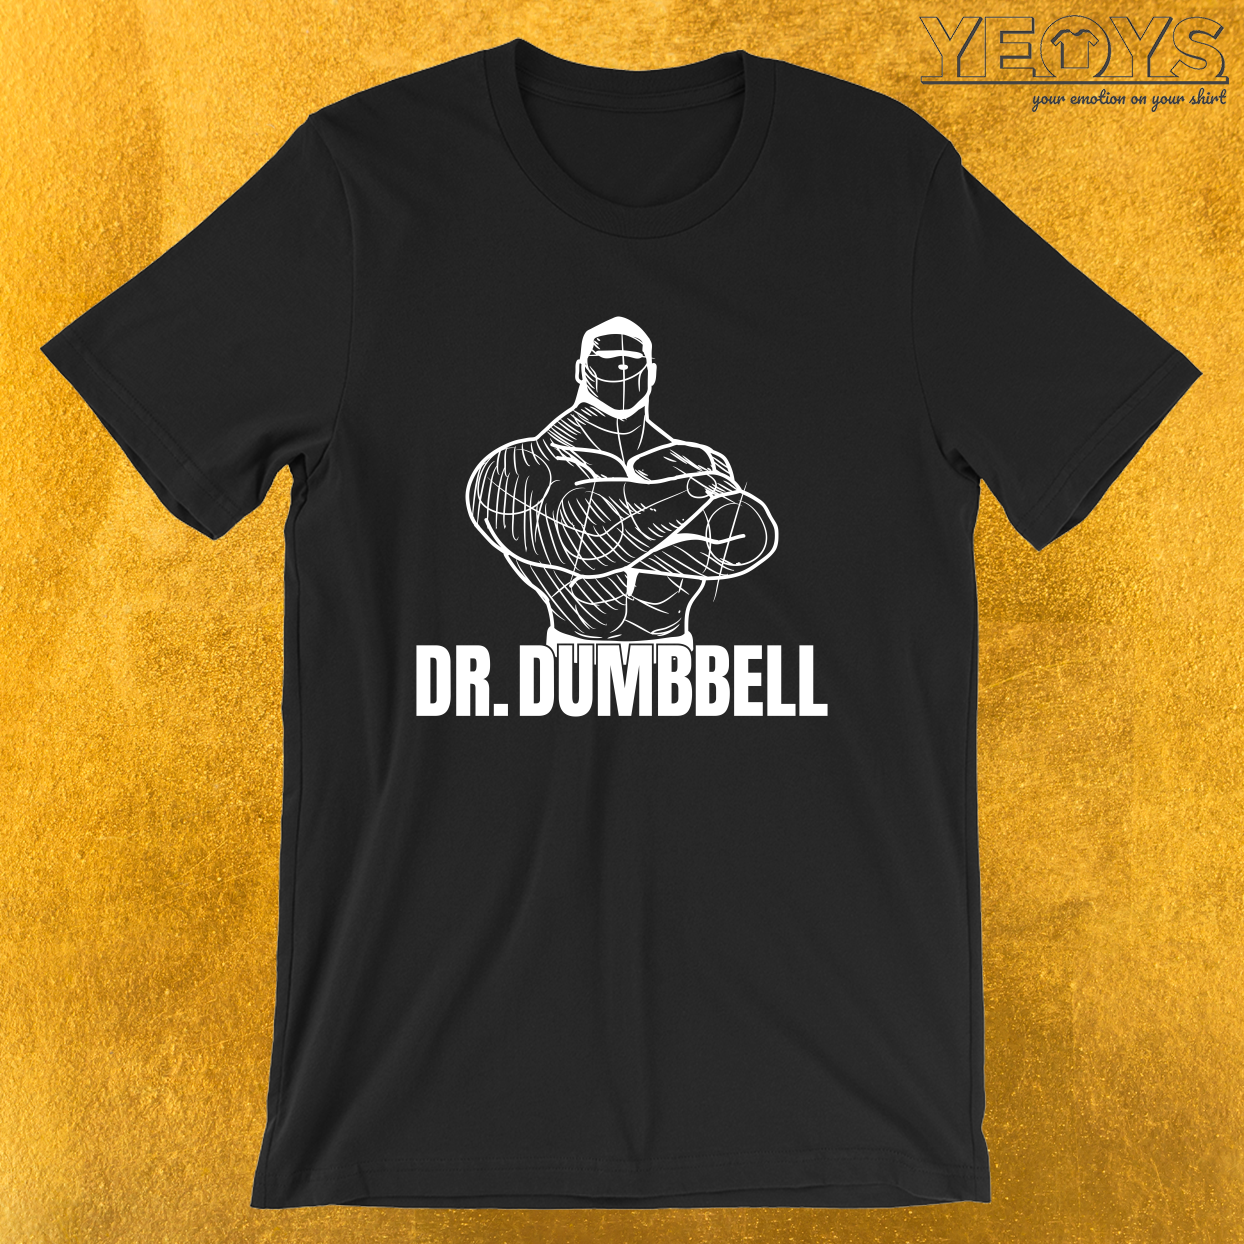 Bodybuilding – Dr. Dumbbell Tee